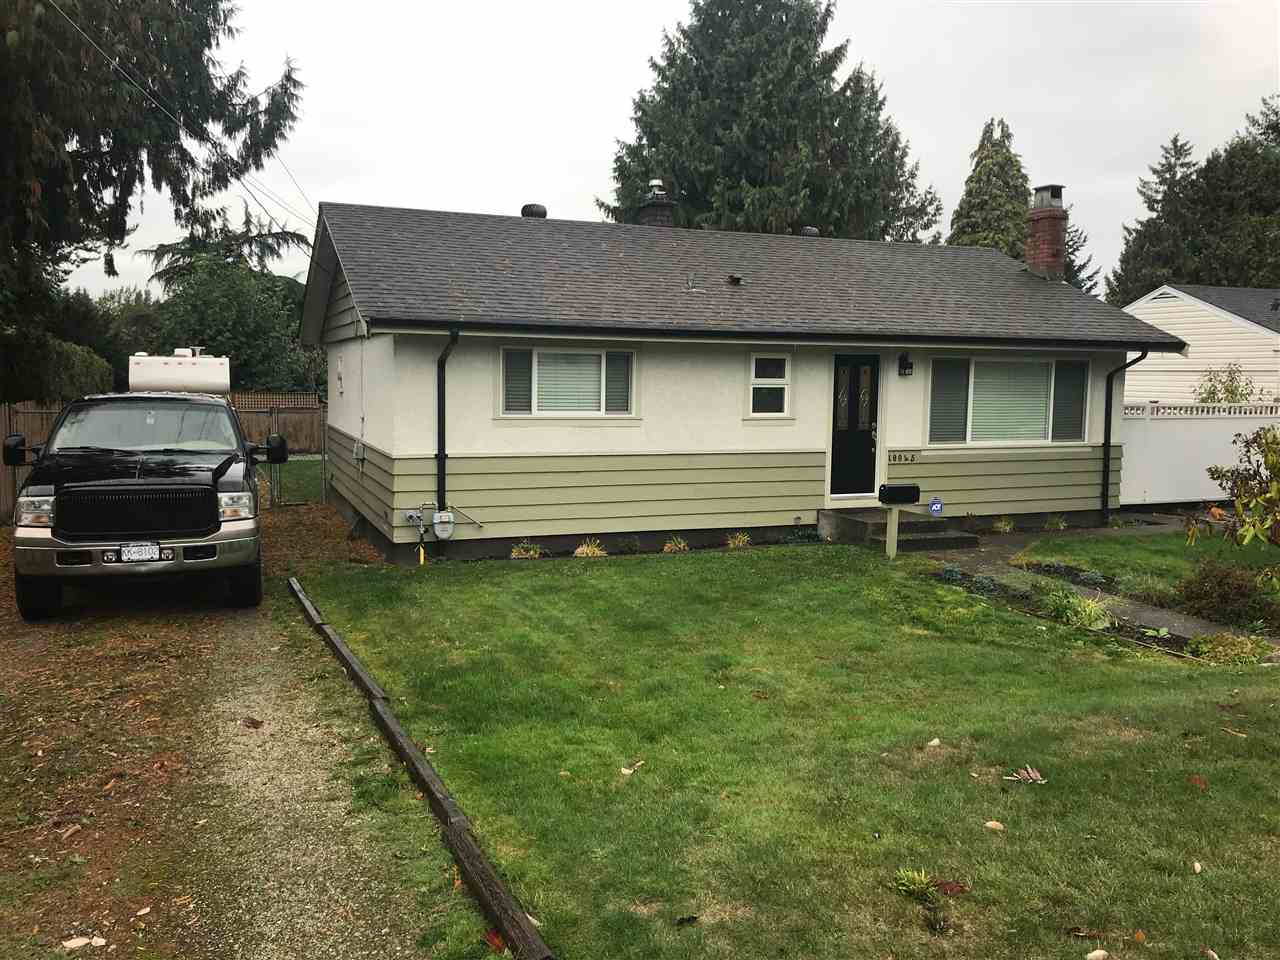 Located in sought after St. Helen's Park neighbourhood, you will appreciate this cozy 3 bdrm rancher on a huge 70x120 ft lot with detached garage/workshop, private fenced & gated backyard. Two driveways to the property, can accommodate multitude of vehicles plus a RV or two. Renovations over the years renovations include, newer; kitchen with maple cabinets and quartz countertops, bath with heated floor, laminate flooring, doublepane windows, paint, roof & gutters. Detached garage/workshop has 220v power. Ready to move in and enjoy....Great home for residence or build new if you prefer.